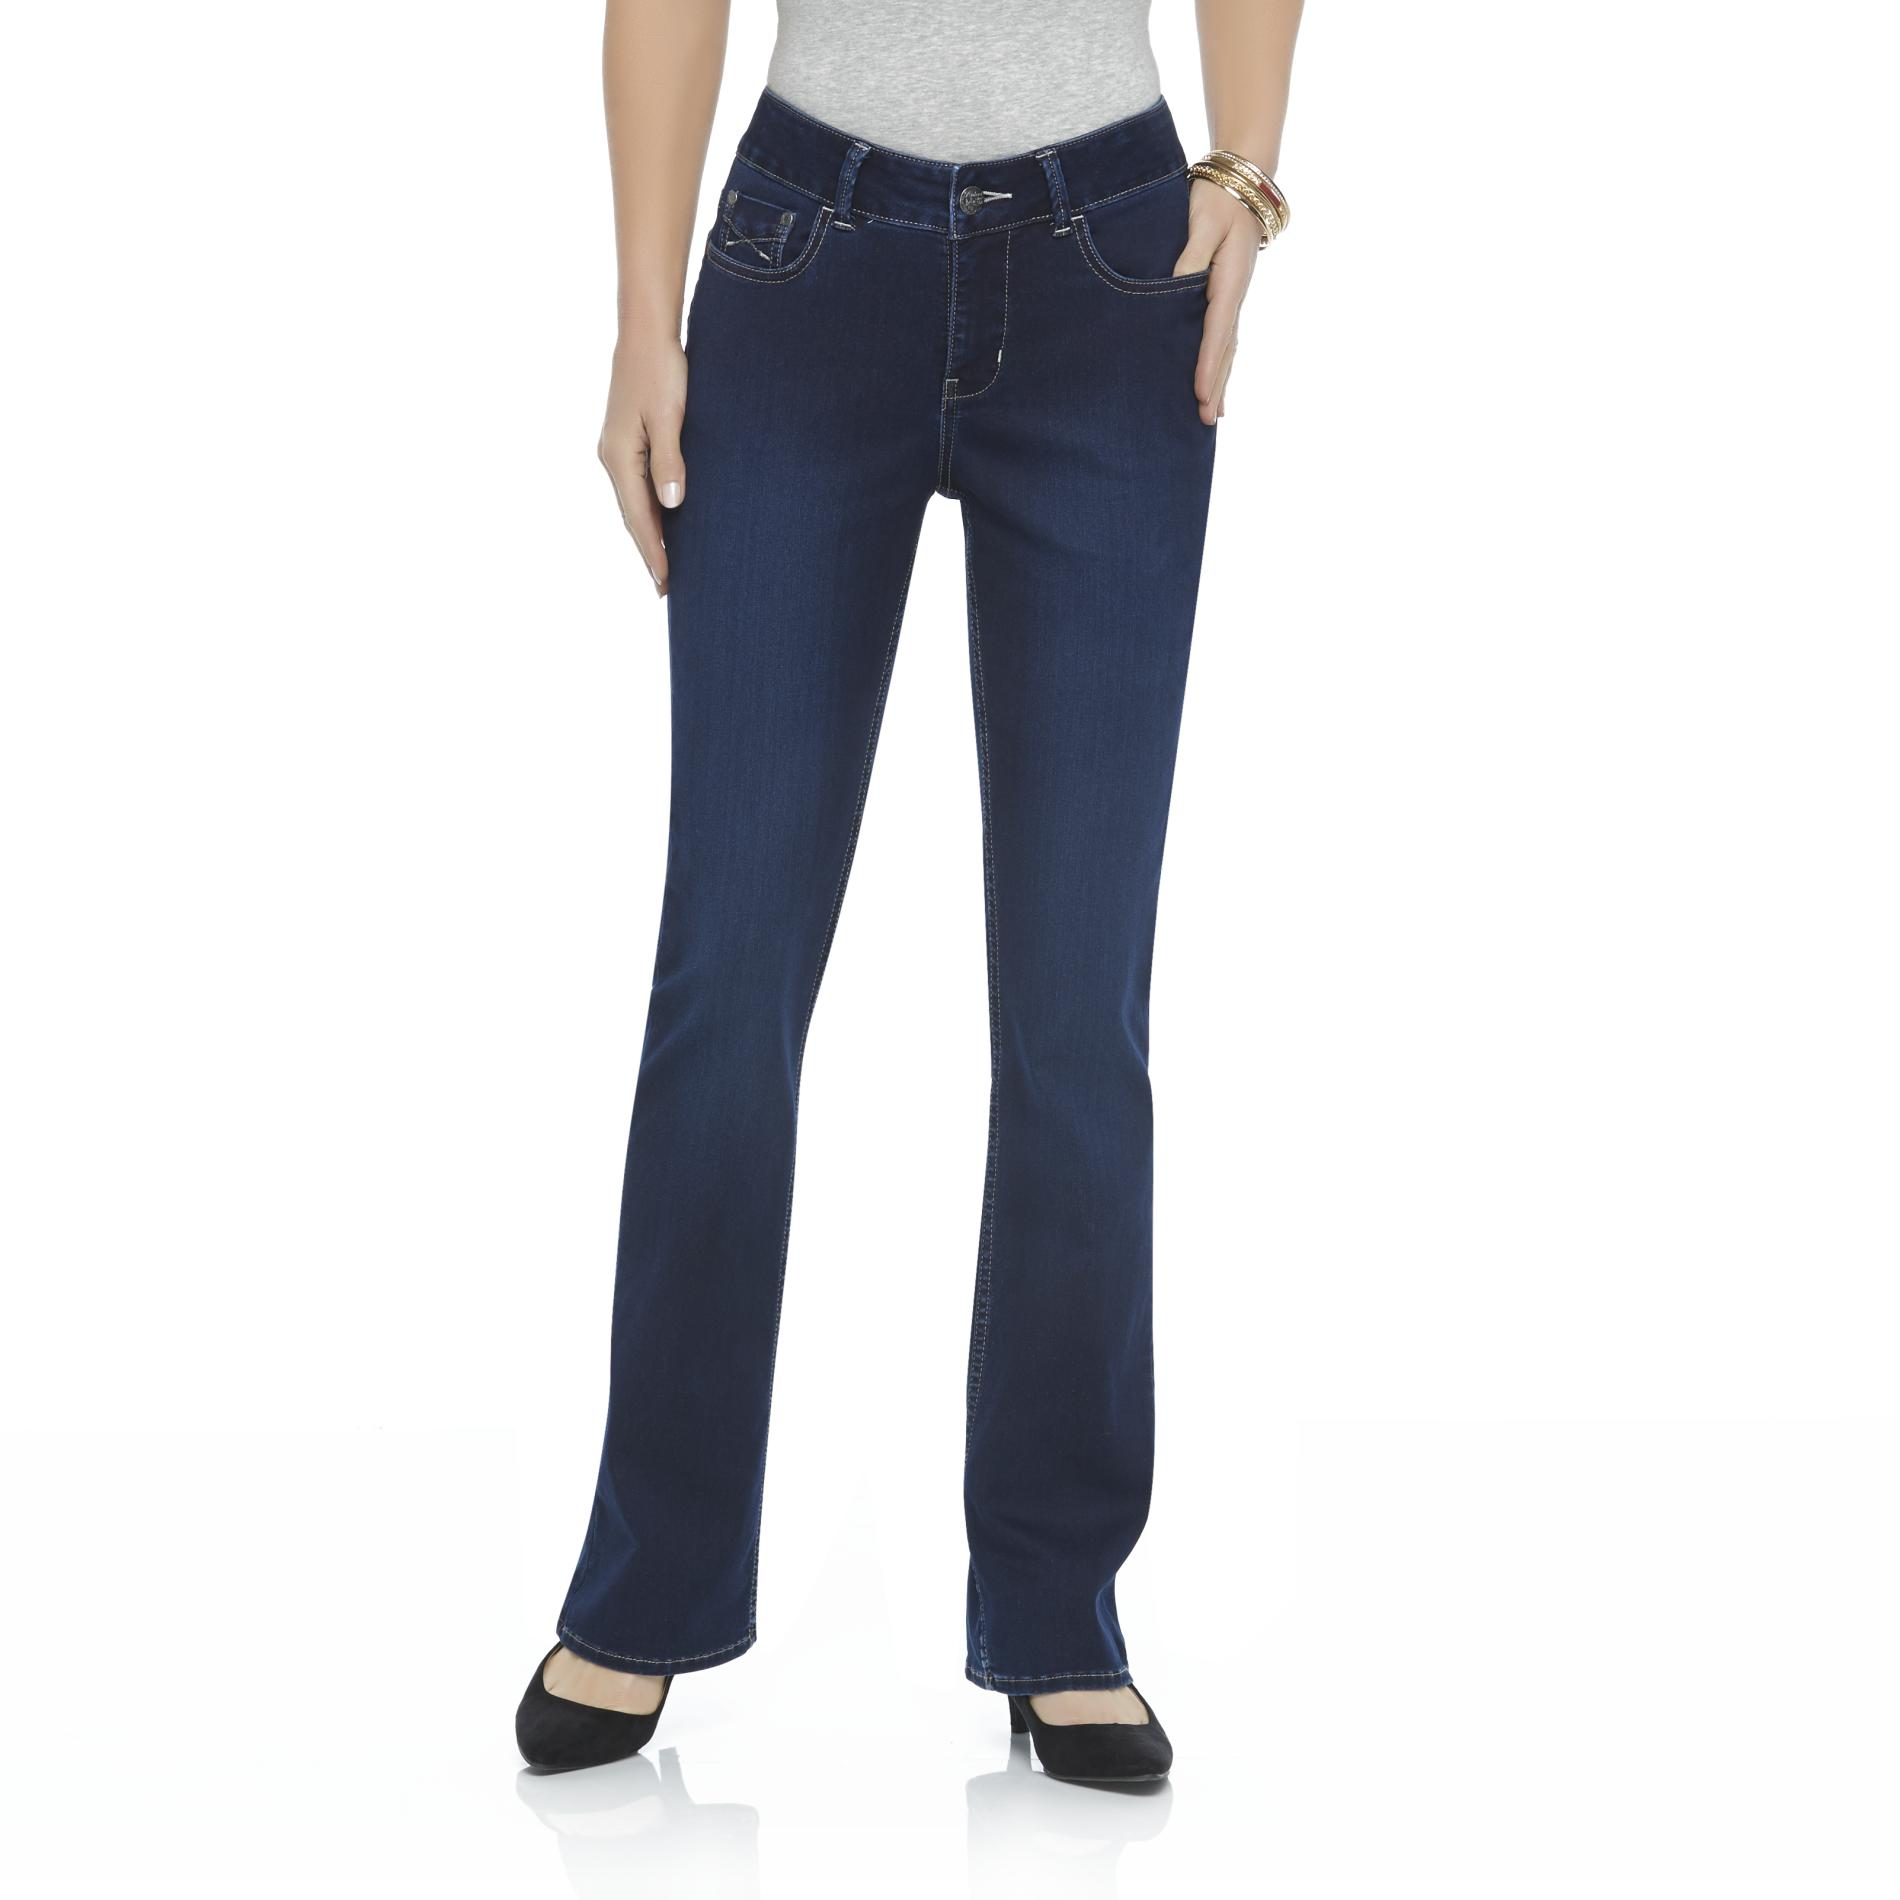 9b636137 Riders by Lee Riders by Lee Women's Heavenly Touch Samantha Bootcut Jeans